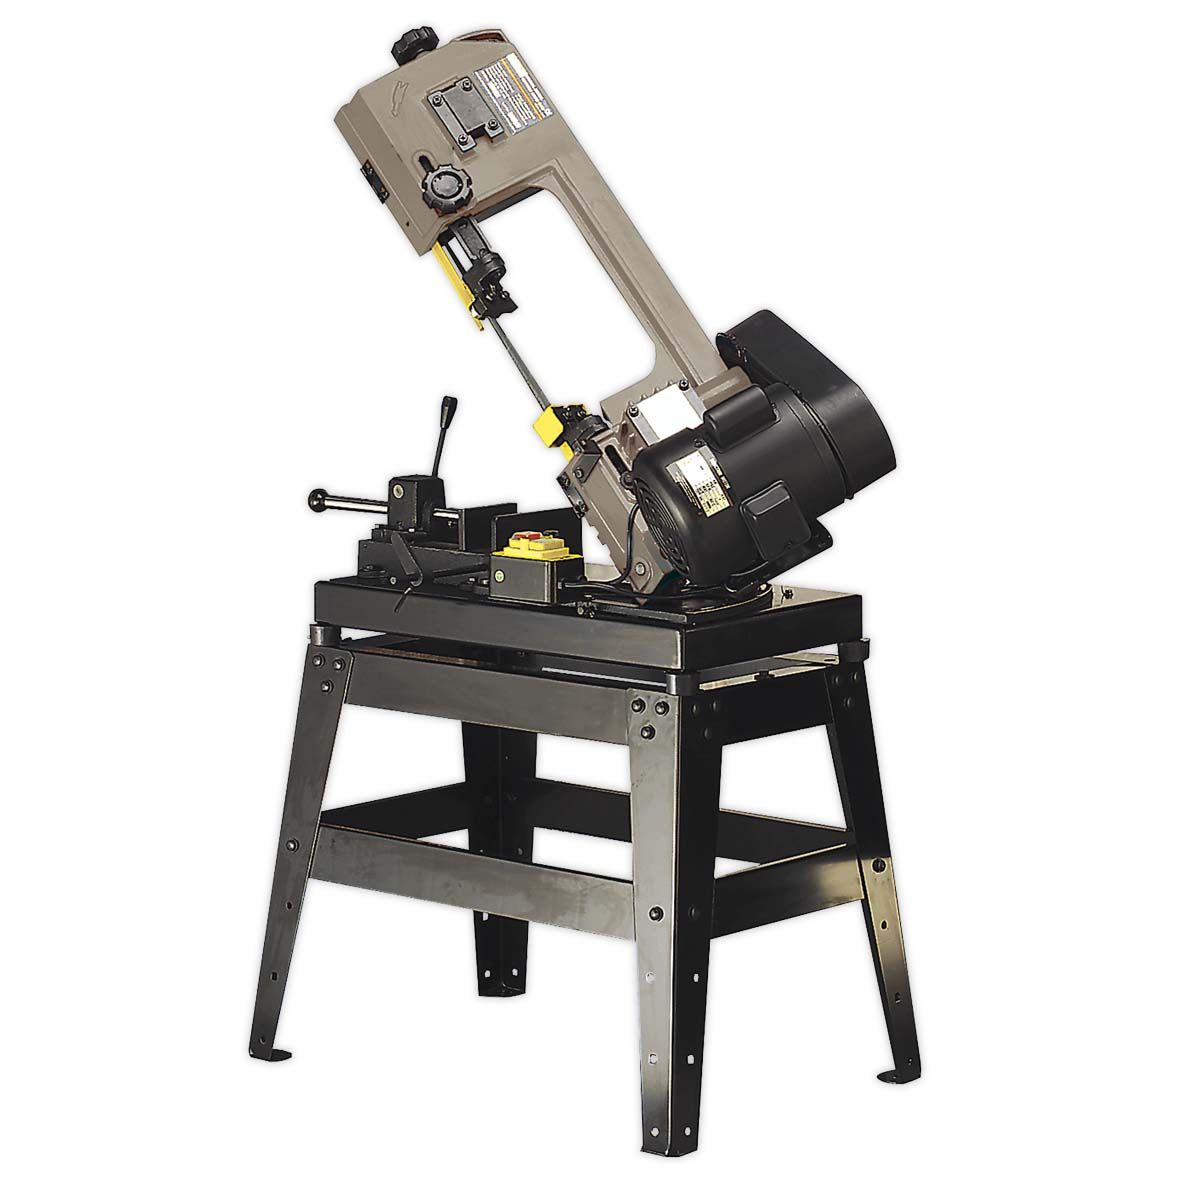 Sealey Metal Cutting Bandsaw 150mm 230V with Mitre & Quick Lock Vice